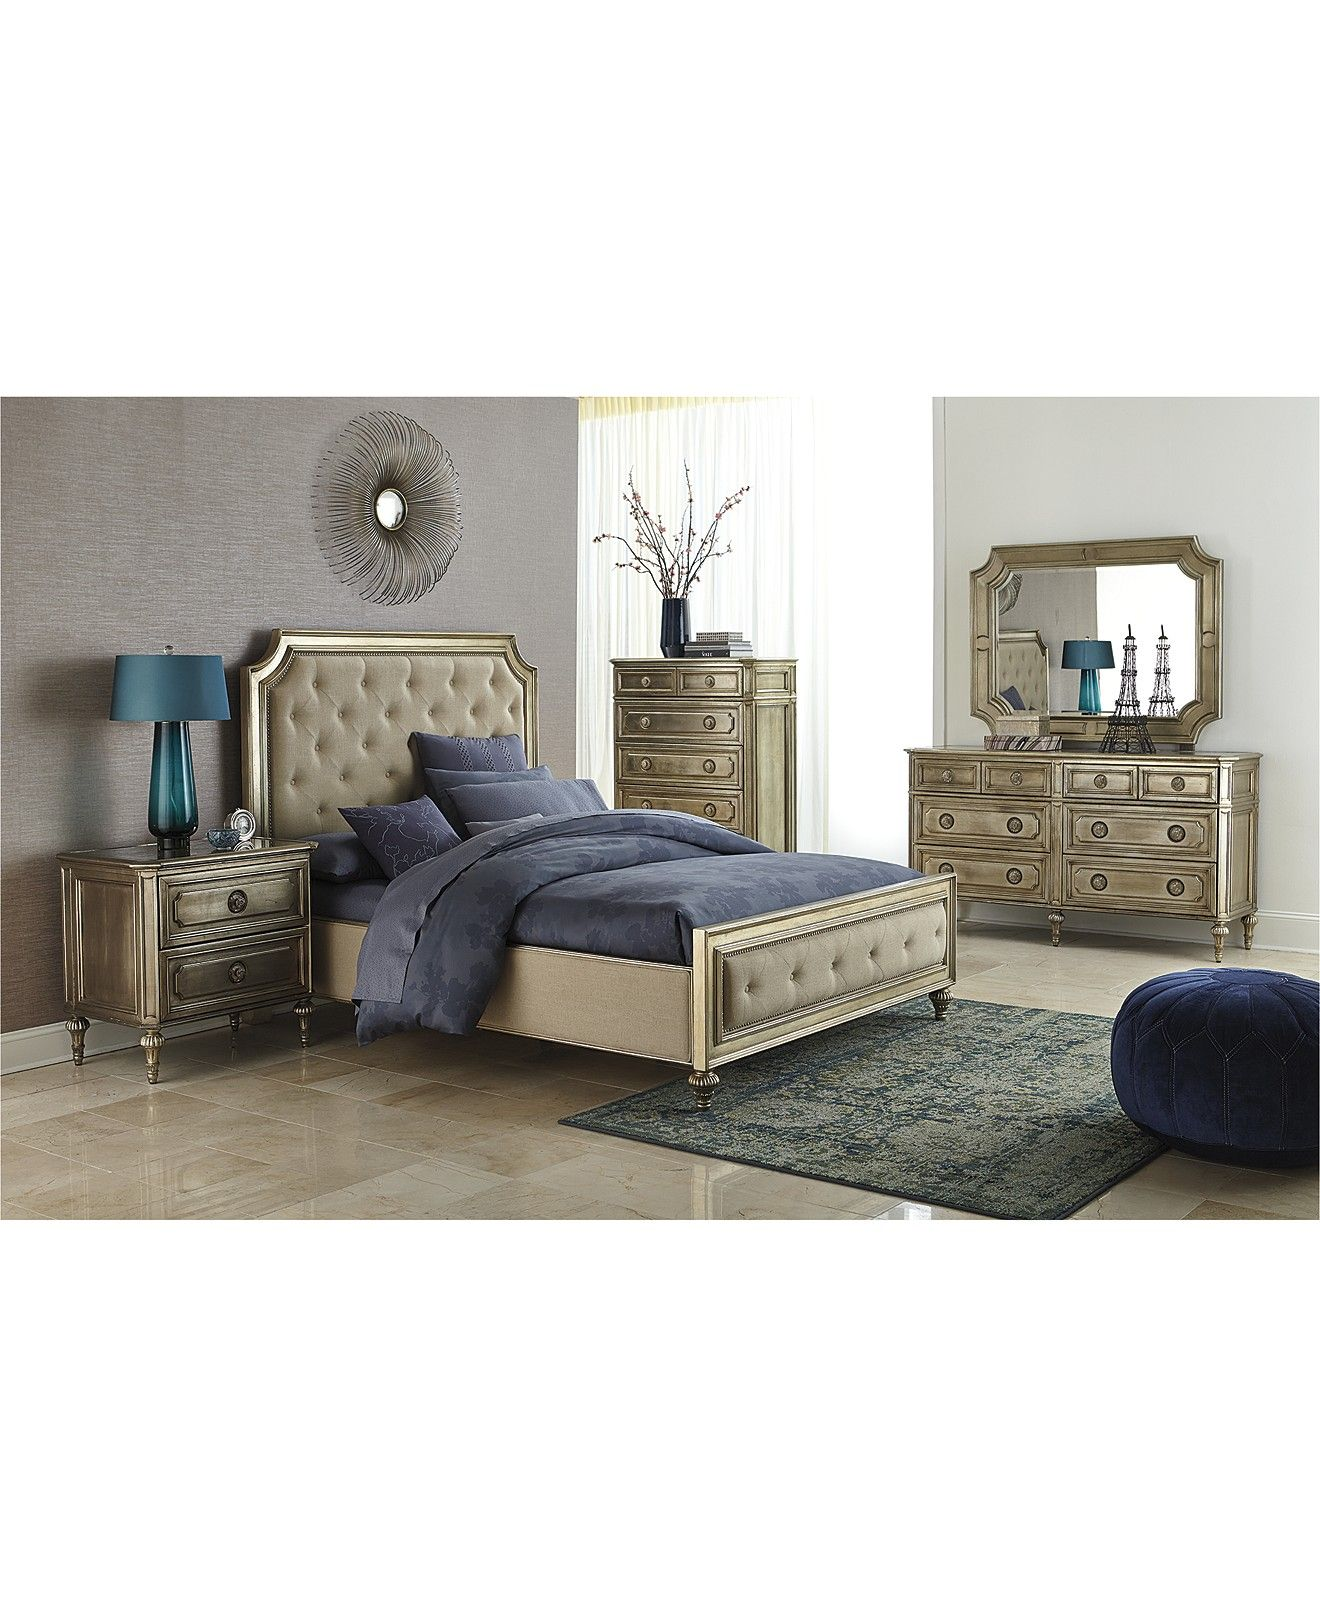 Www Macyfurniture: Prosecco 3 Piece Queen Bedroom Furniture Set With Chest